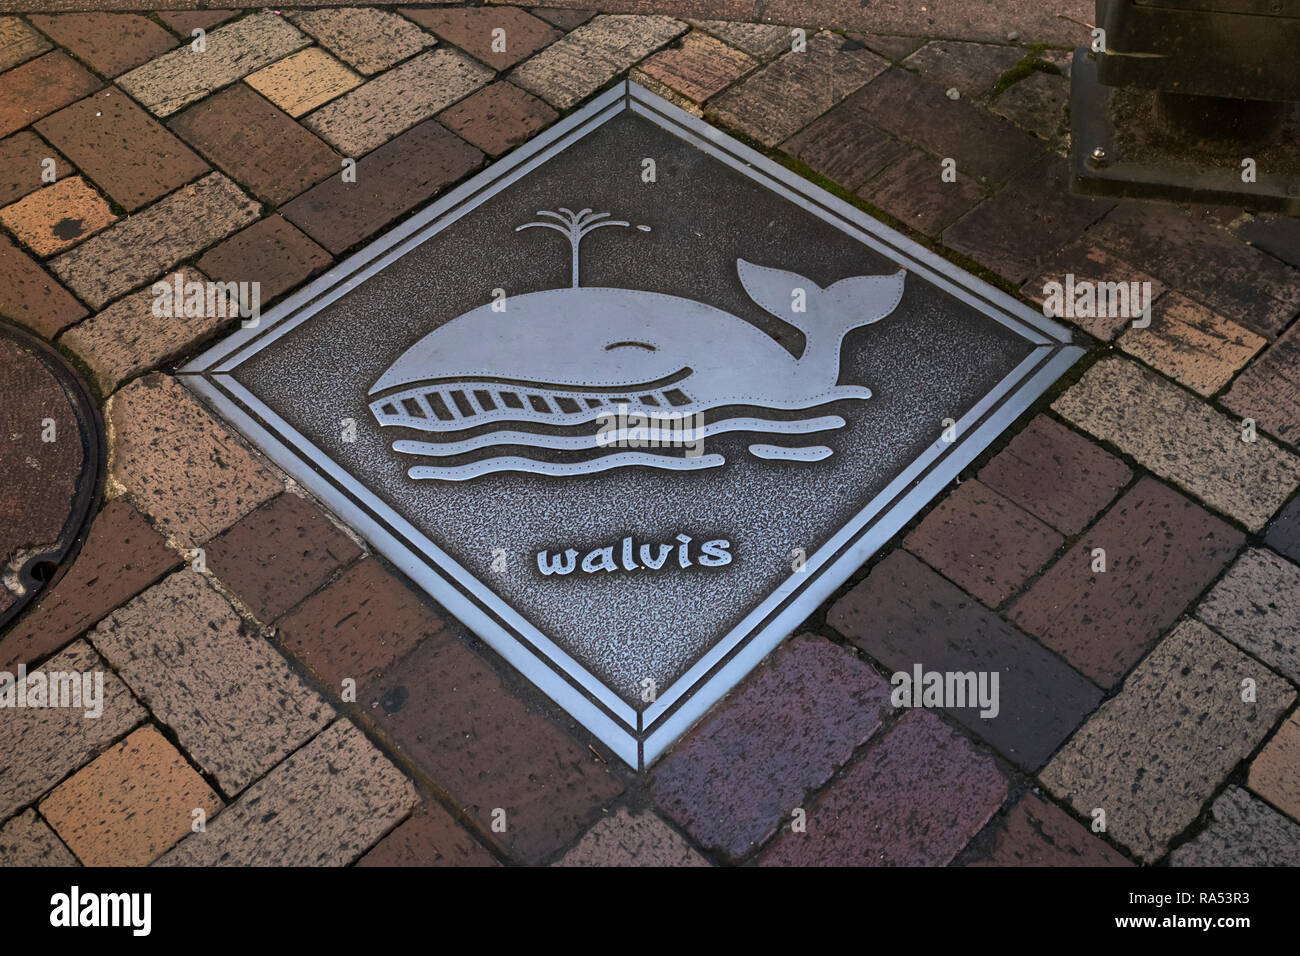 Nagasaki, Japan - October 24, 2018: Manhole cover art in Nagasaki with a whale and the dutch word Walvis - Stock Image